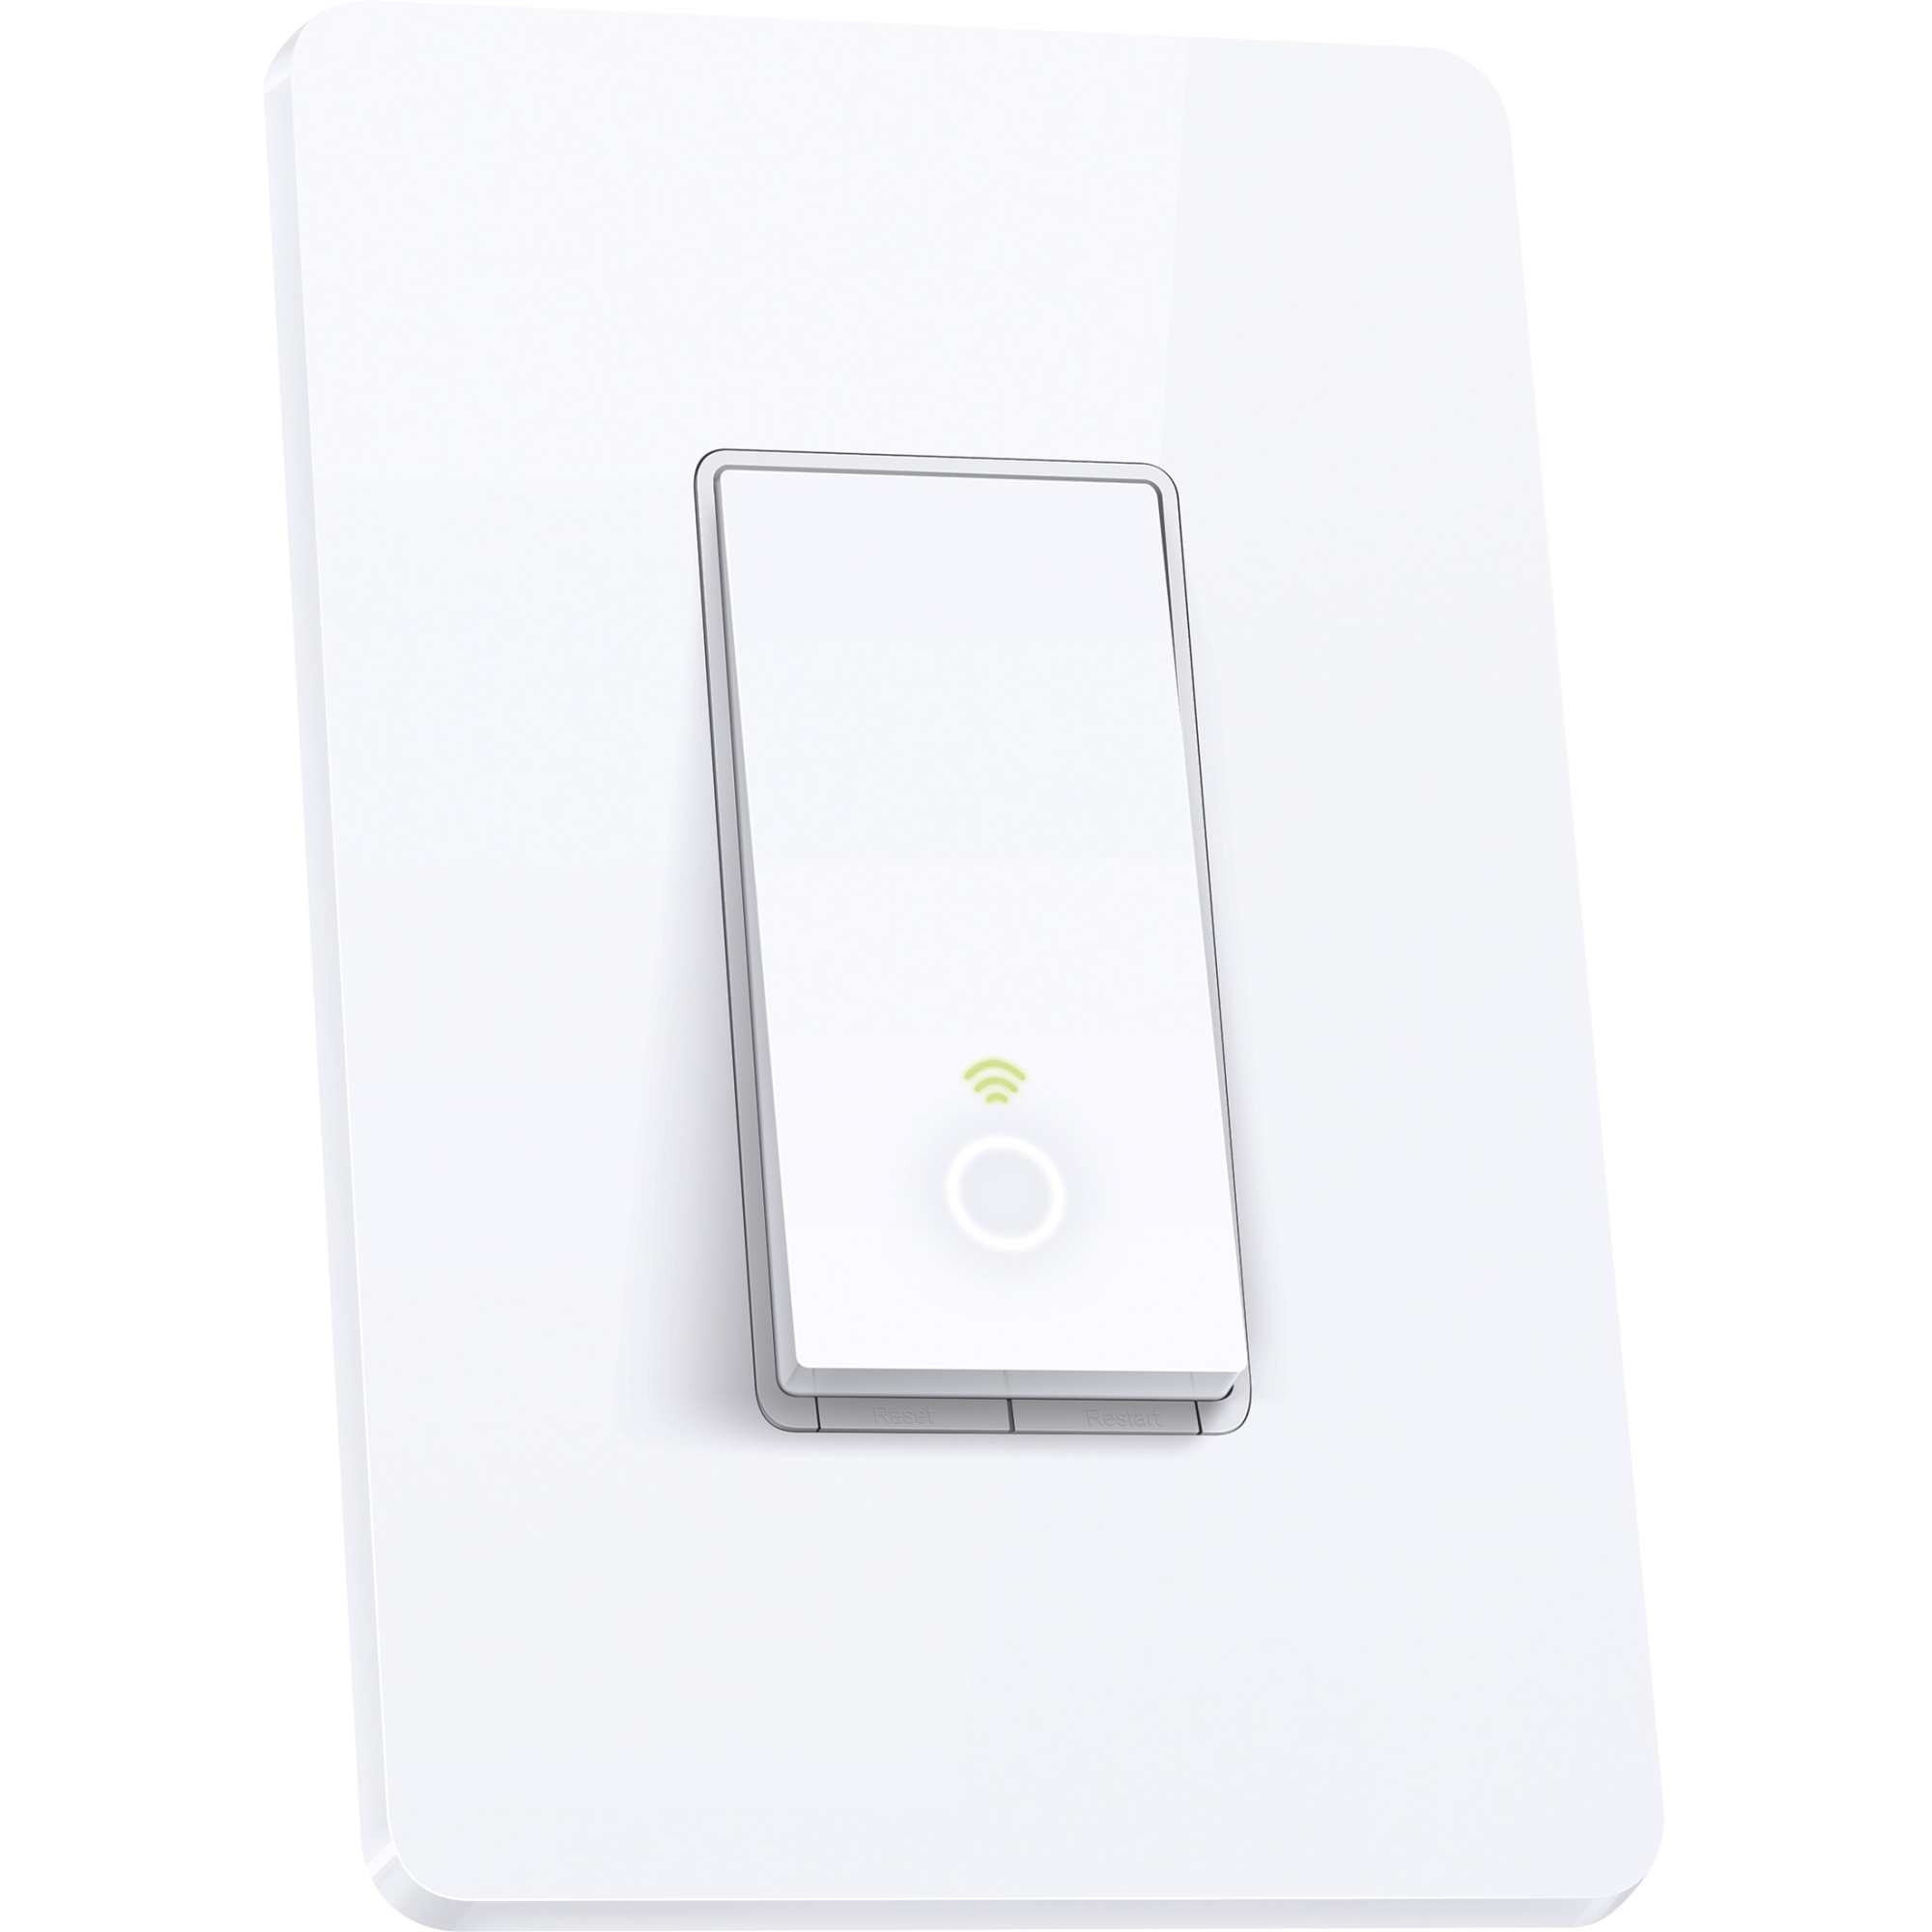 711caf8c 3d6c 4c5e 81a7 05398964e504_1.32ca130702a2fdb639584eefcfcabf0e tp link hs200 smart light switch, no hub required, wifi walmart com tp link hs200 wiring diagram at soozxer.org